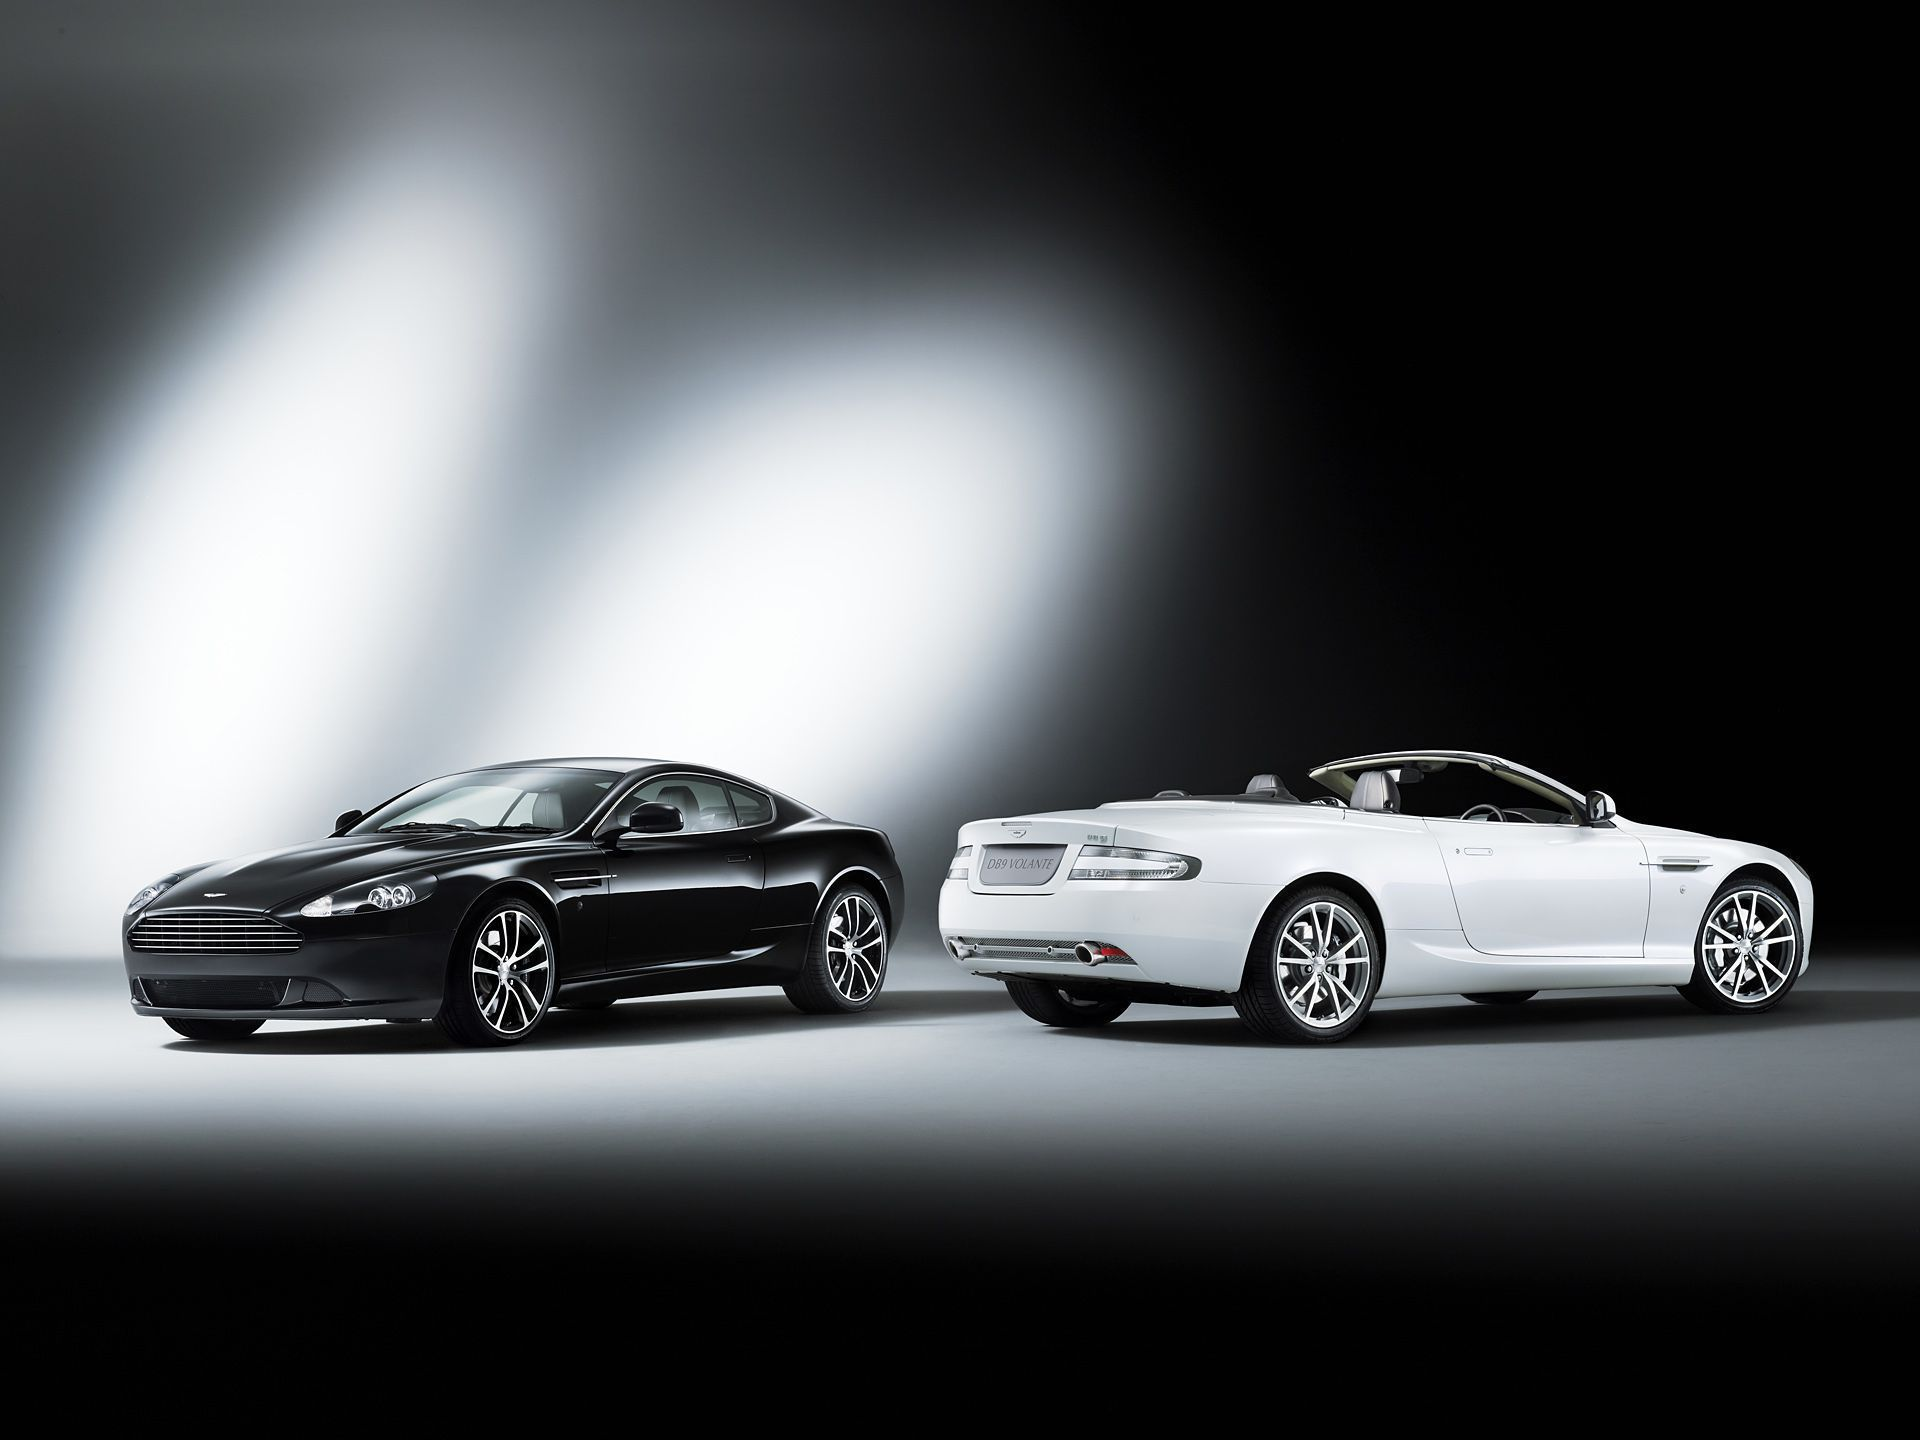 Aston Martin Db9 Wallpapers And Backgrounds